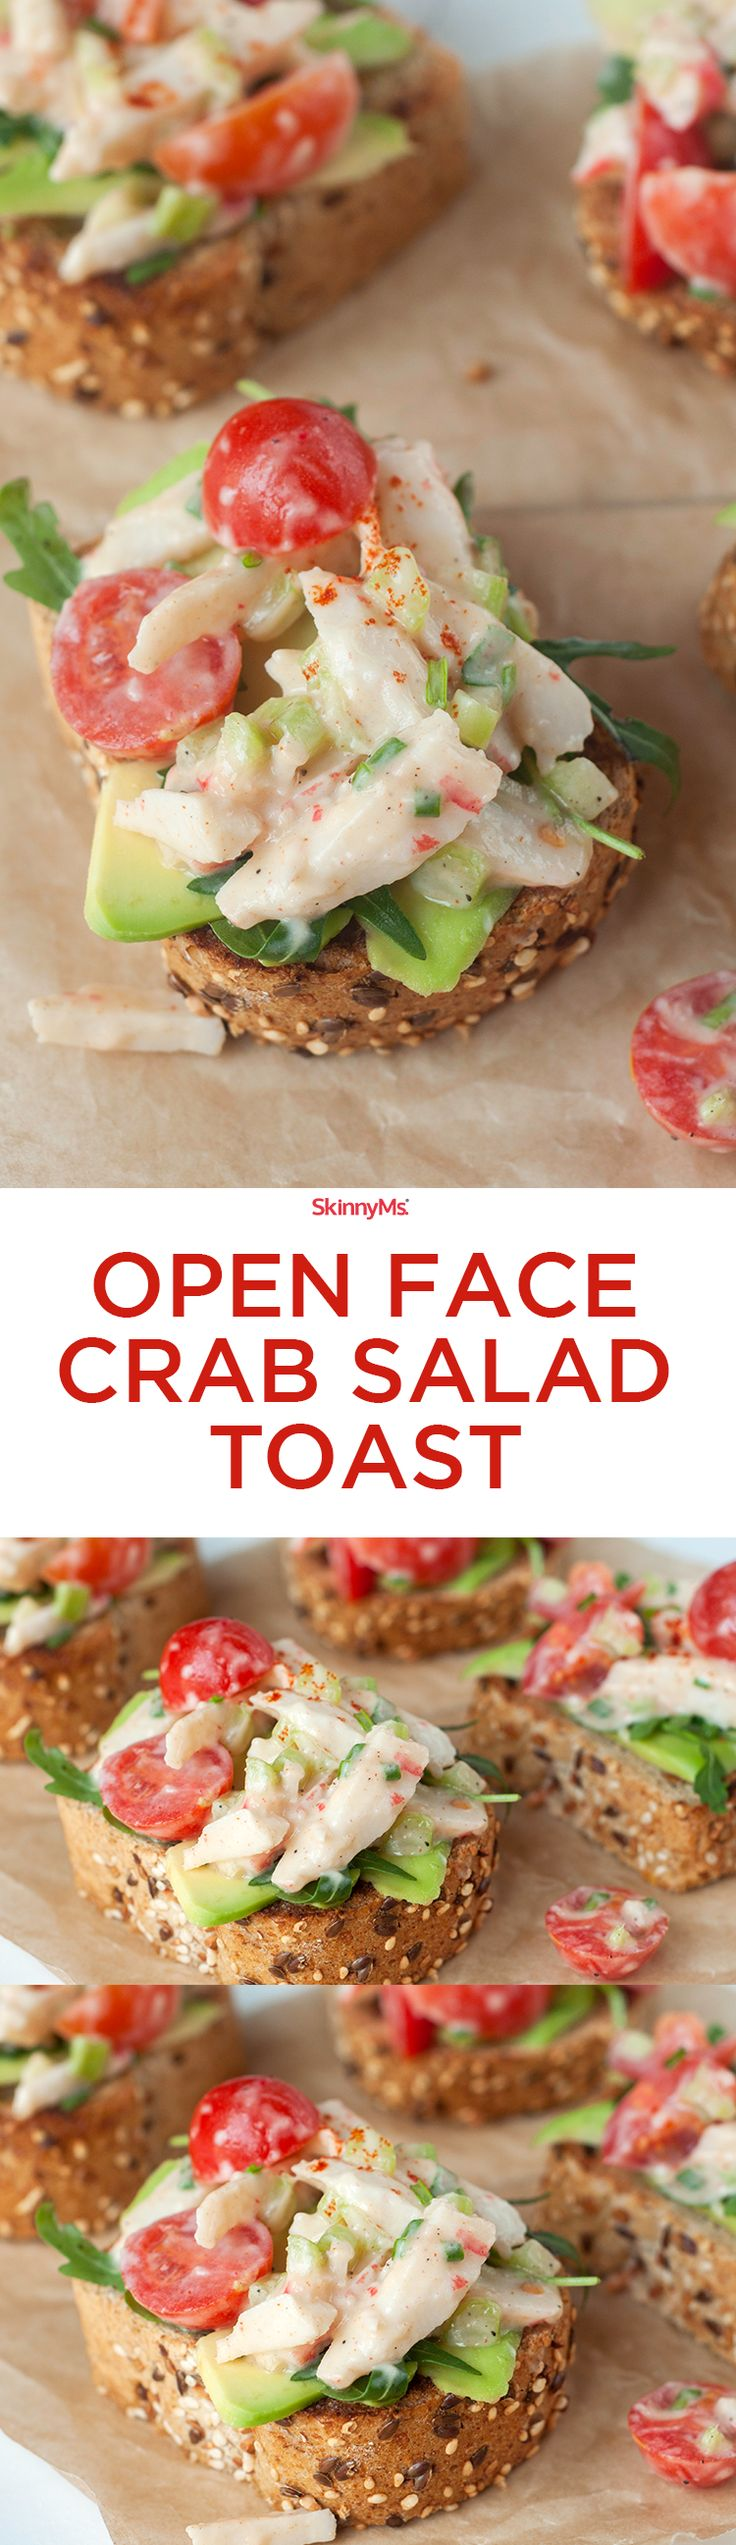 You can eat our Open Face Crab Salad Toast for breakfast, lunch, or dinner...just make extra so you can enjoy more tomorrow!